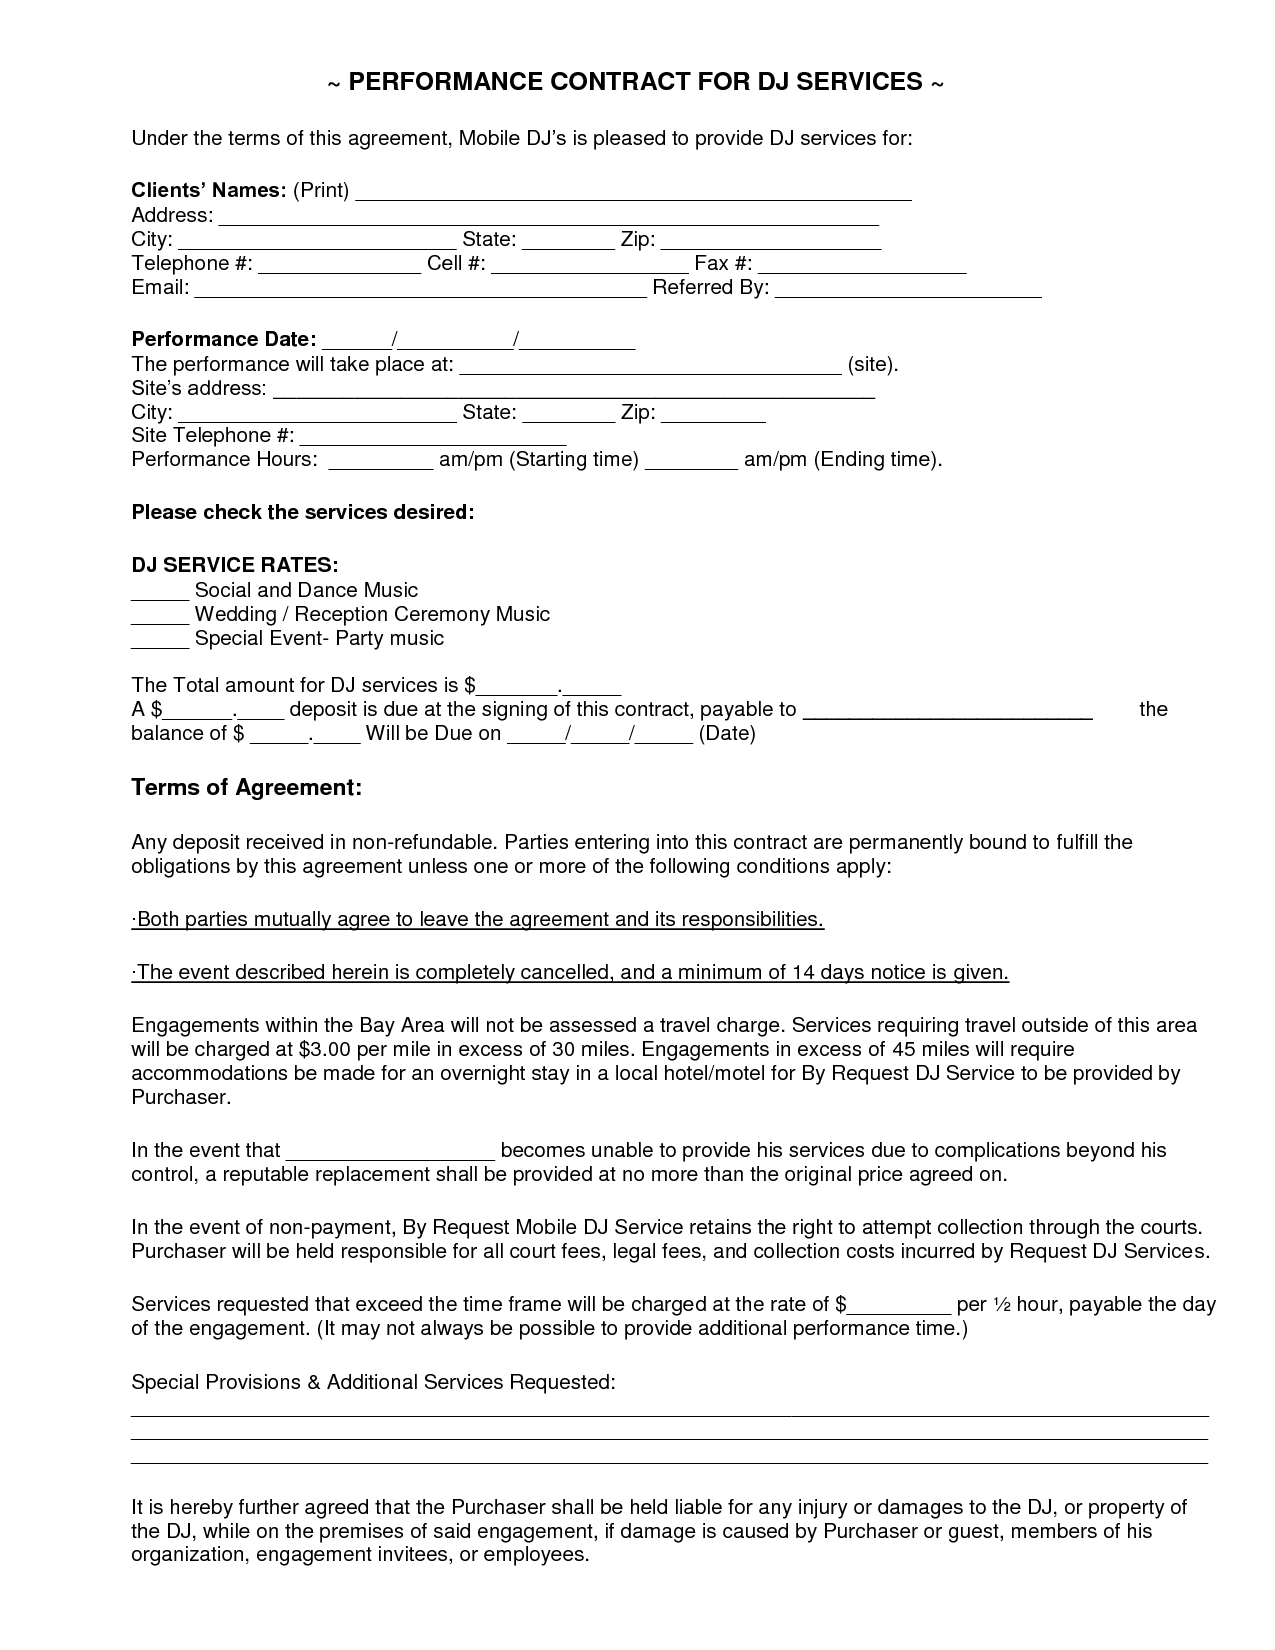 Mobile Product Manager Resume Mobile Dj Contract Dj Service Contract 2011 Current